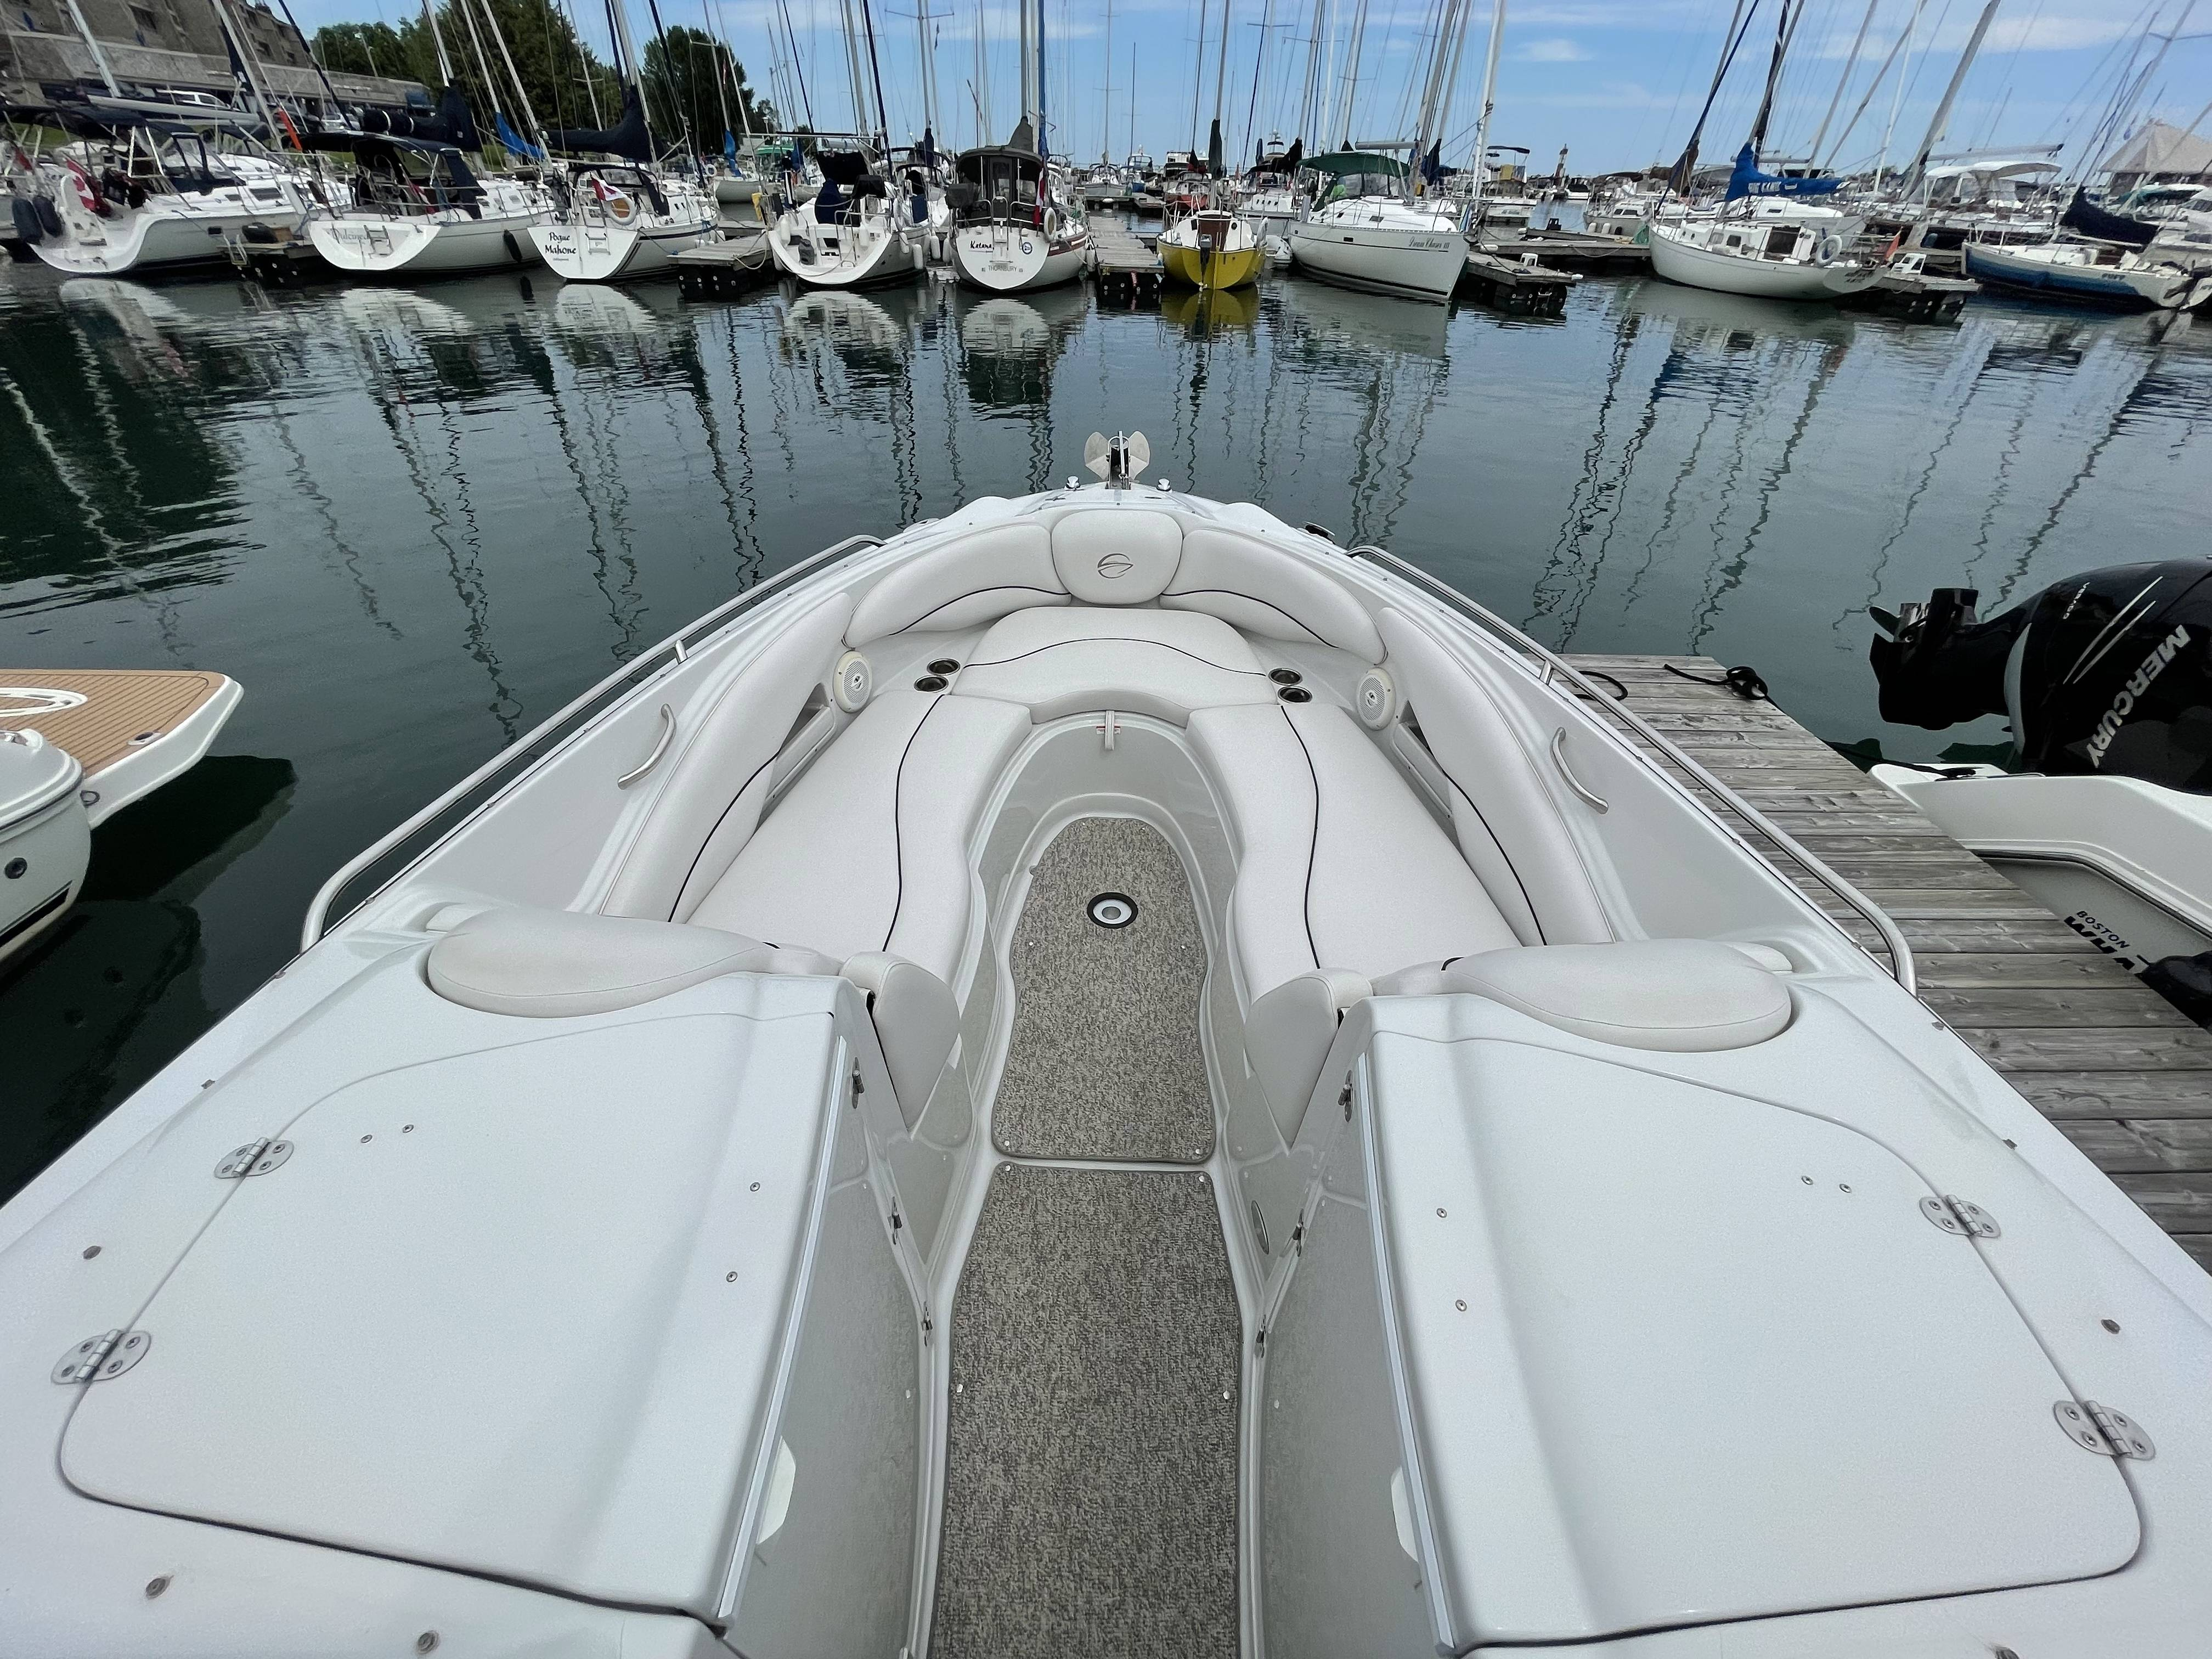 2011 Crownline boat for sale, model of the boat is 320 LS & Image # 13 of 55